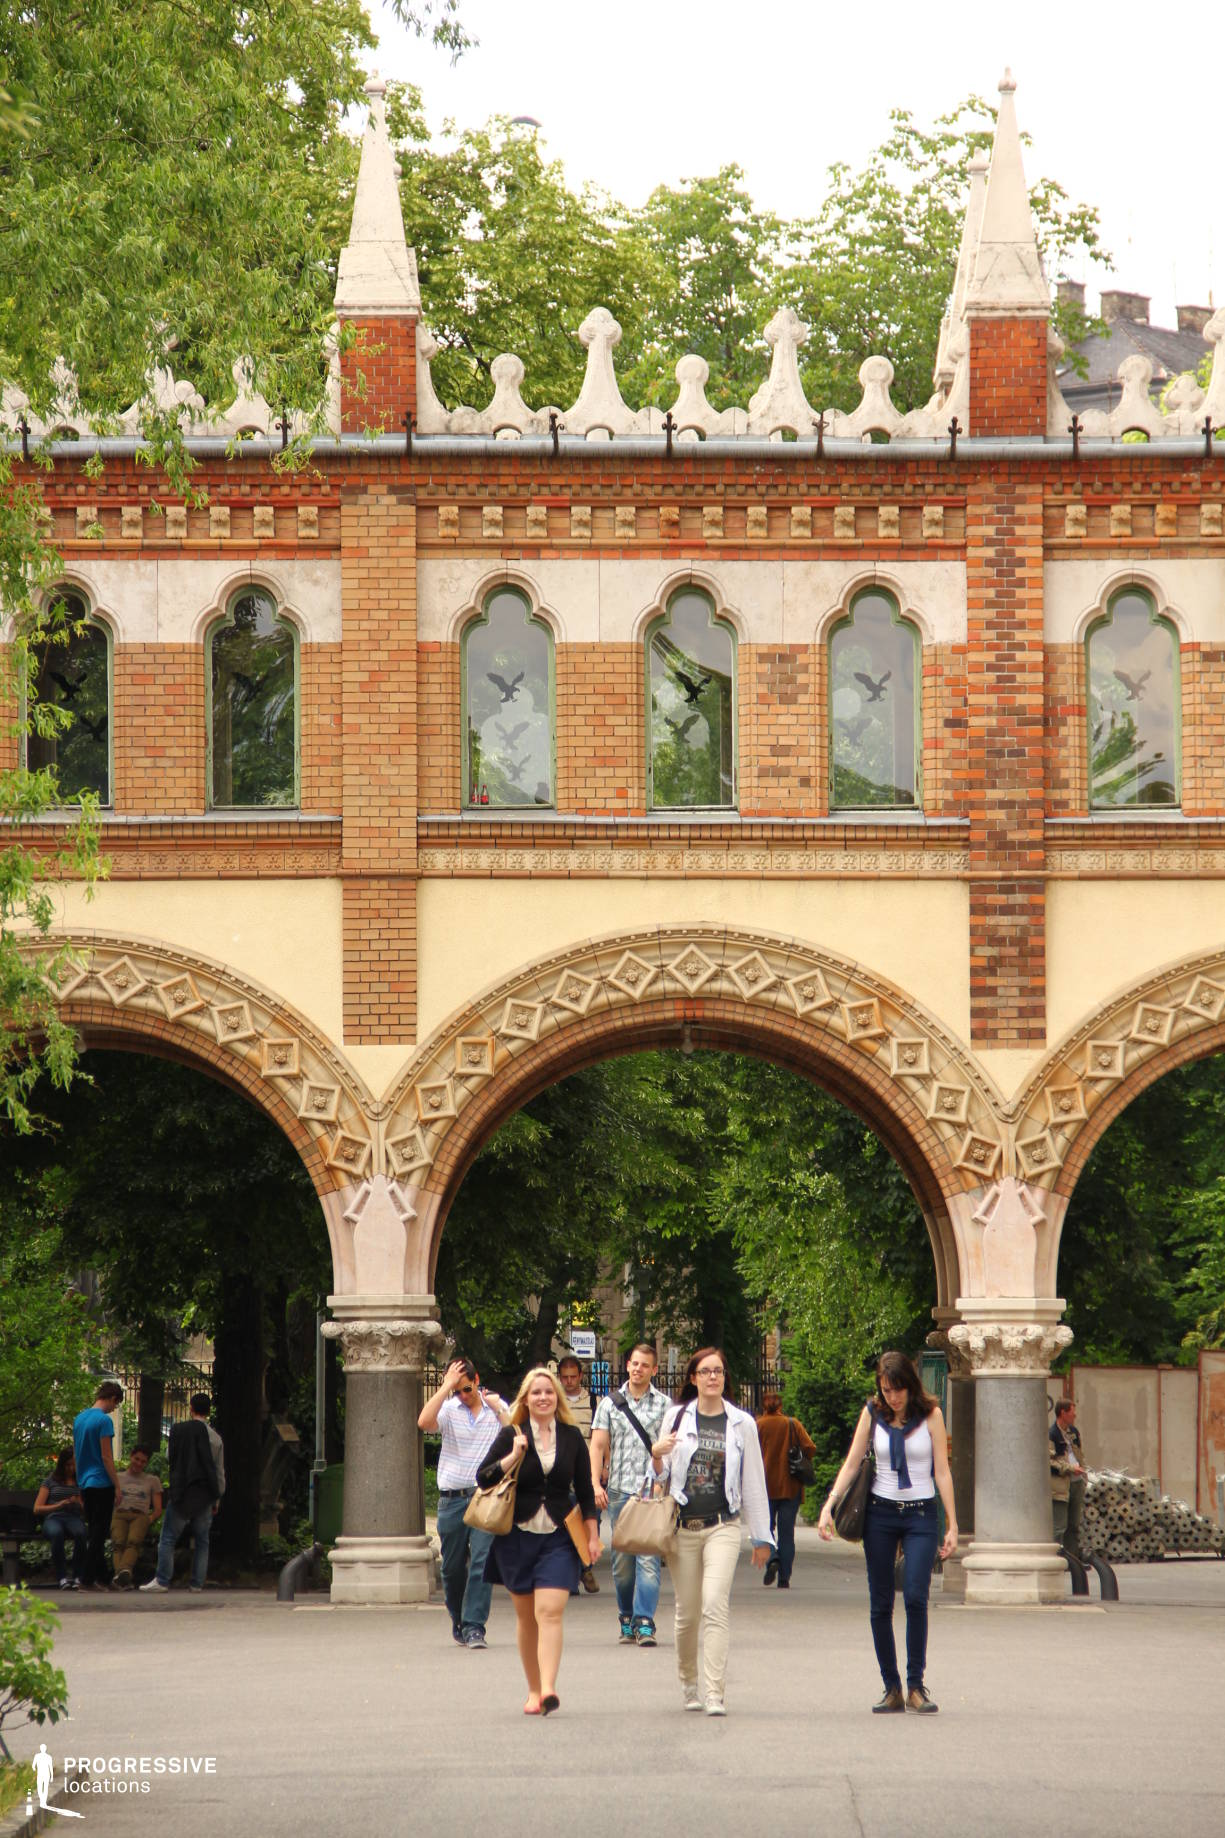 Locations in Hungary: Campus, Arcade, University Of Technology